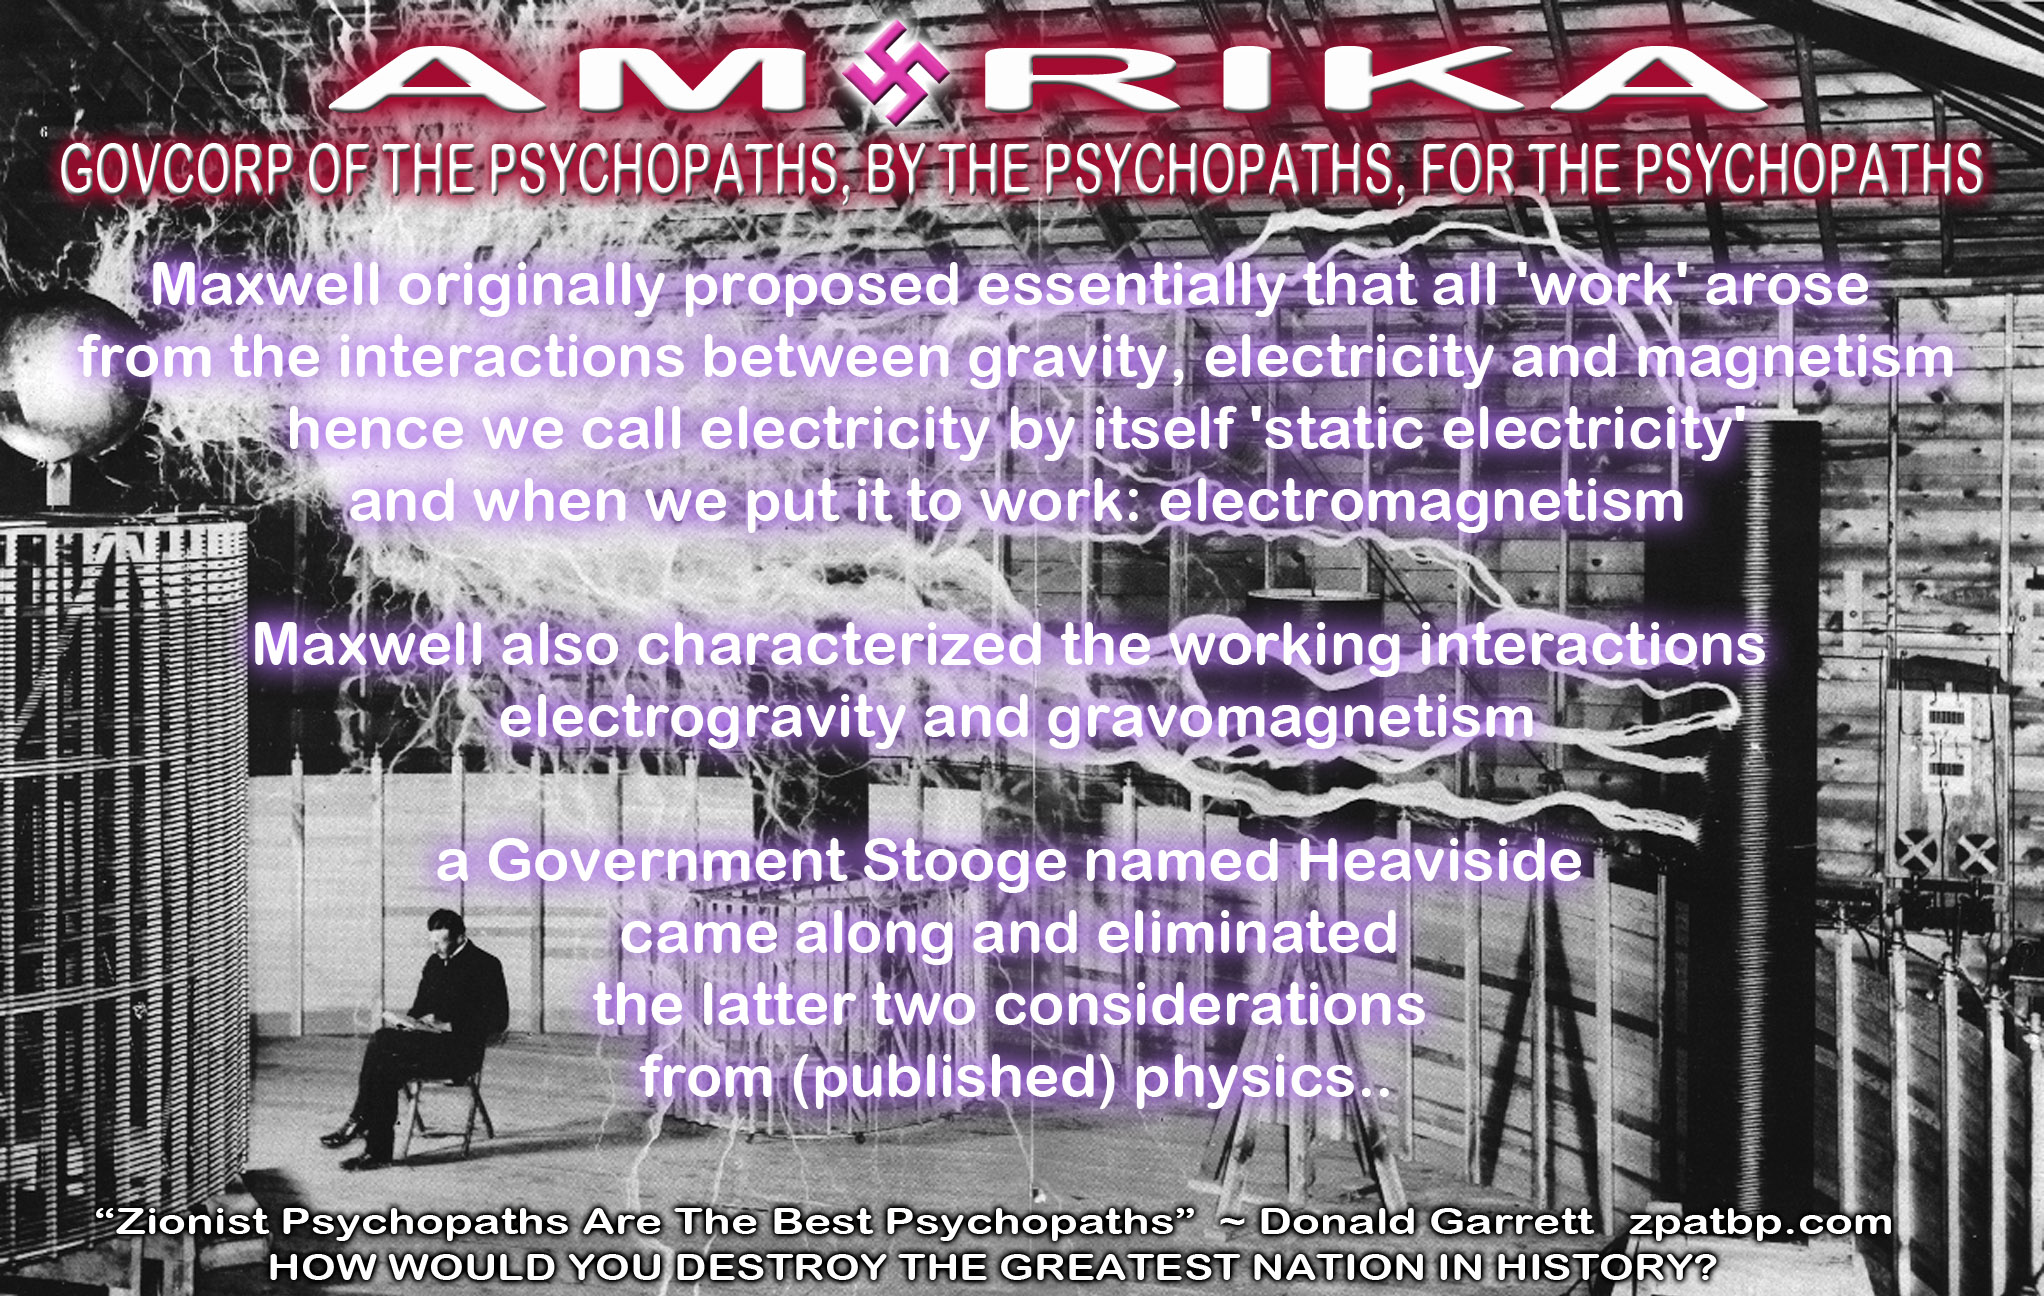 Tesla With Lightning: Maxwell originally proposed essentially that all 'work' arose from the interactions between gravity, electricity and magnetism hence we call electricity by itself 'static electricity' and when we put it to work: electromagnetism Maxwell also characterized the working interactions electrogravity and gravomagnetism a Government Stooge named Heaviside, came along and eliminated the latter two considerations from (published) physics..